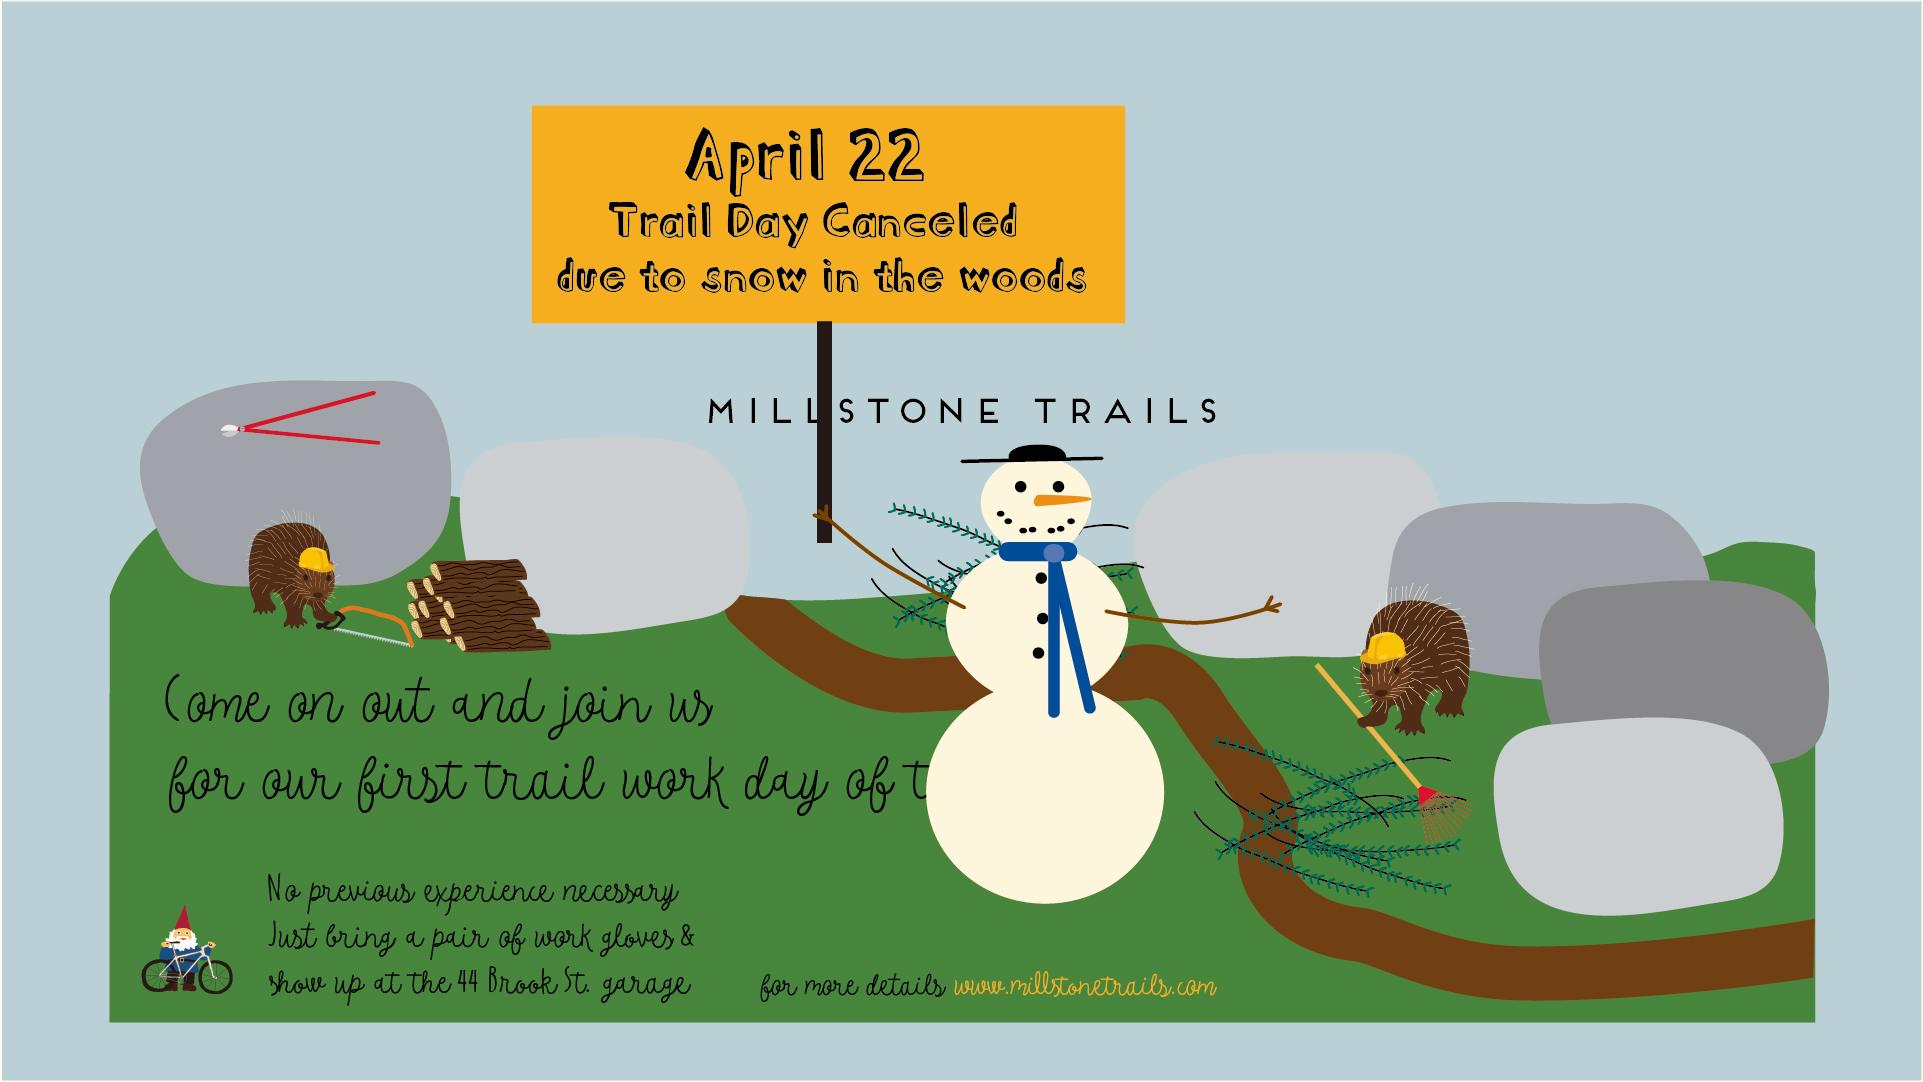 Trail Work Day Canceled